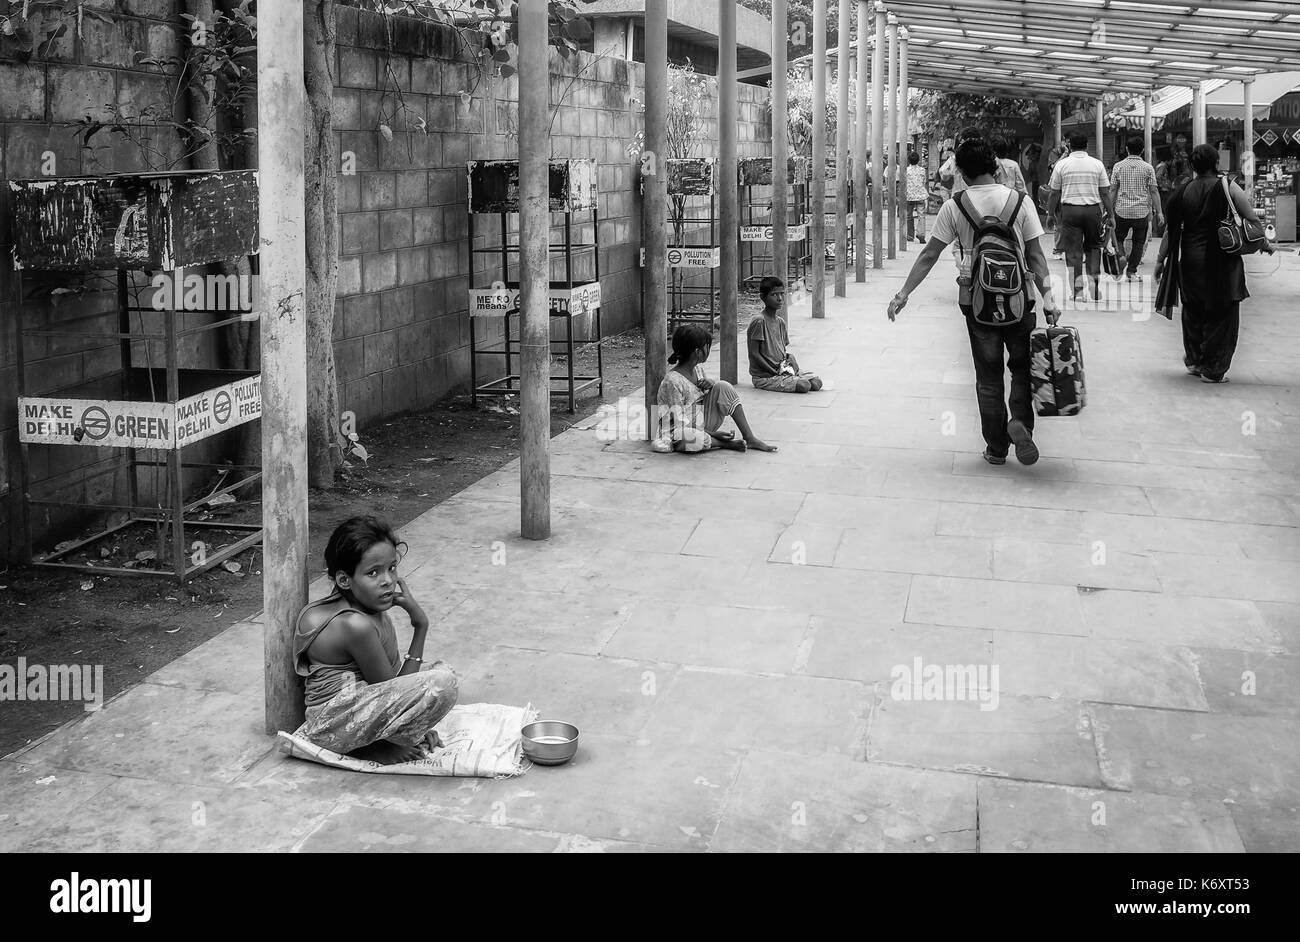 Disabled children seeking alms outside a metro station as disembarked passengers walk past in Delhi, India. - Stock Image